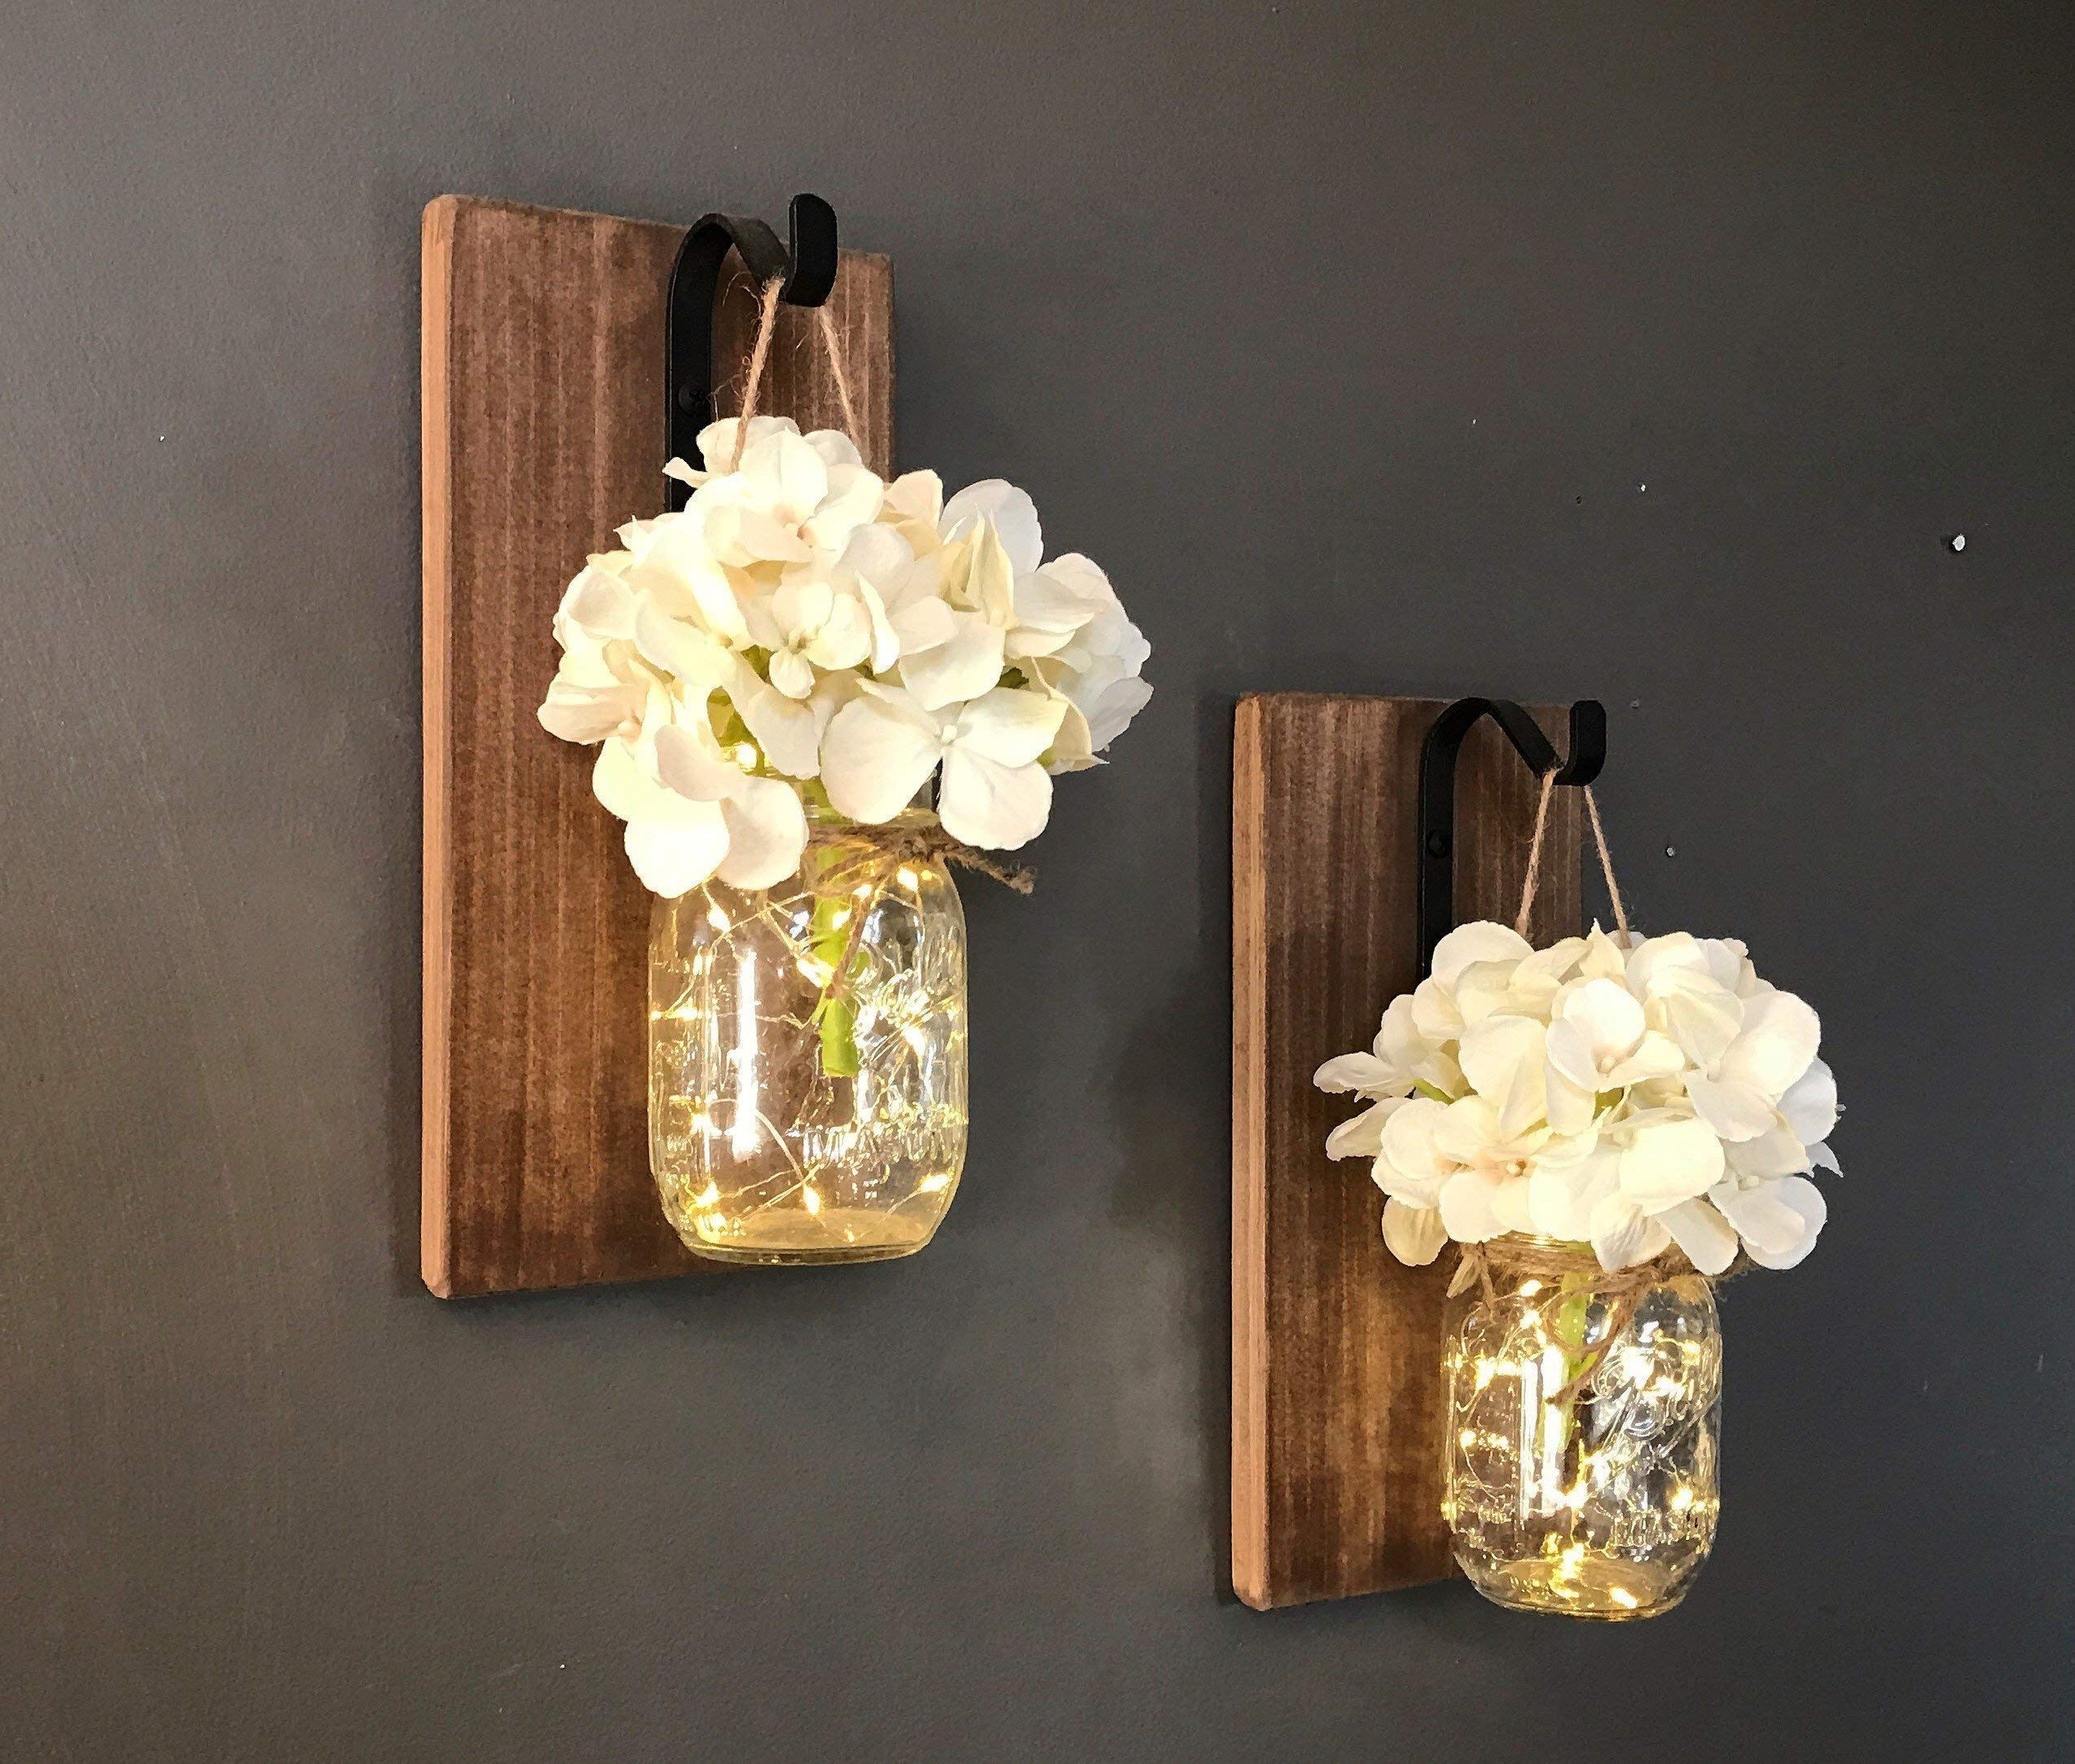 Set of 2 Mason Jar Sconces, Hanging Sconce, Mason Jar Decor, Wall Sconce, Home Decor by All That's Rustic